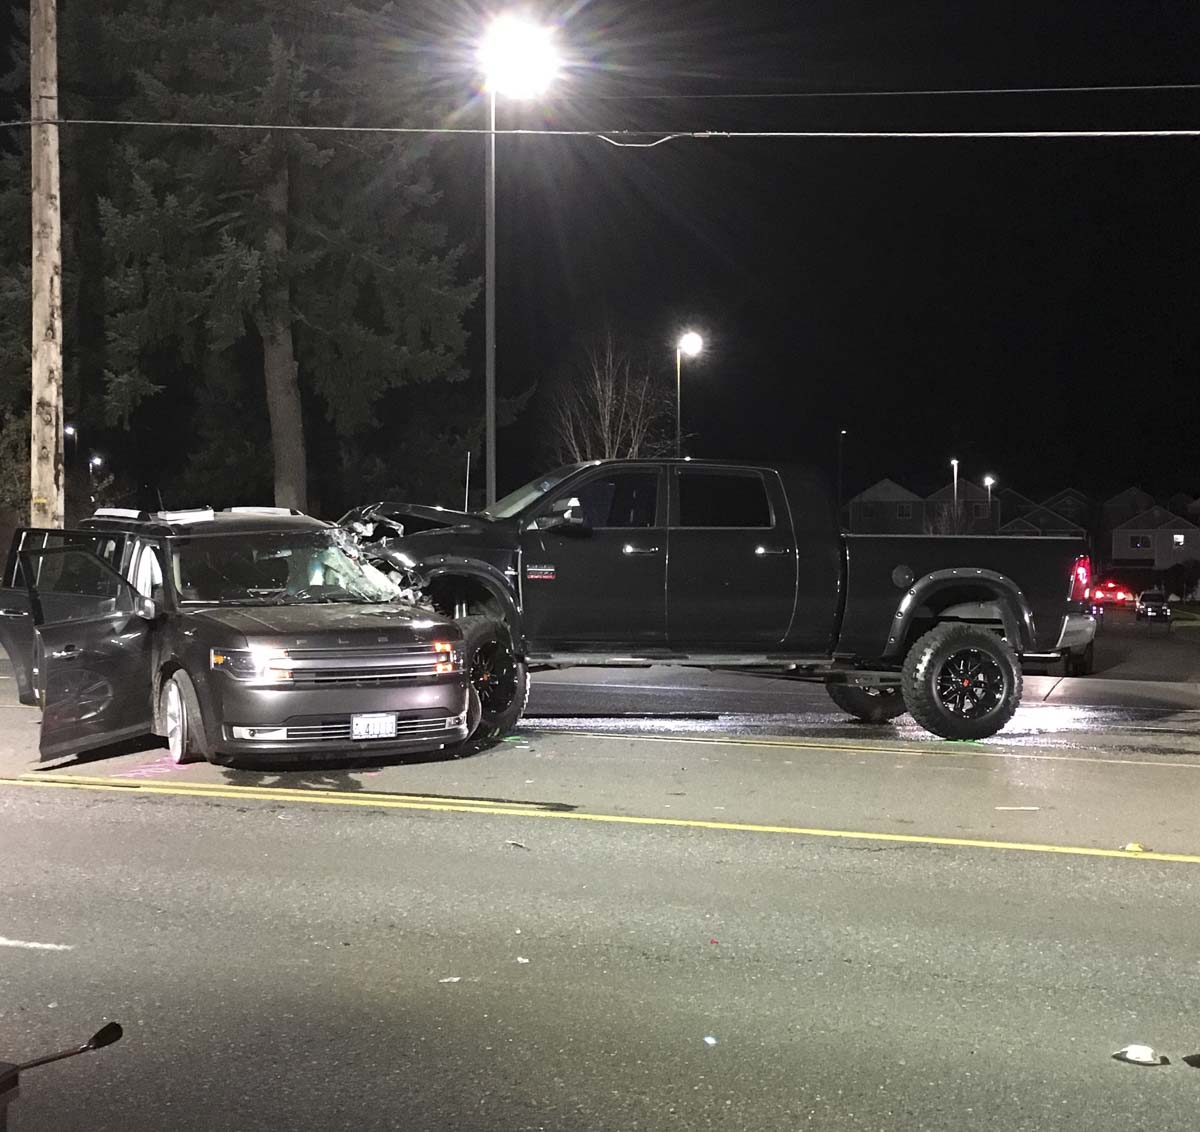 The Ford Flex drove directly into the path of a westbound Dodge 2500 pickup, driven by Kierstan Cormican of Battle Ground. The pickup collided with the driver's side of the Ford Flex, and it's driver, Carolyn Clark-Bennett, was killed. Photo courtesy of Clark County Sheriff's Office